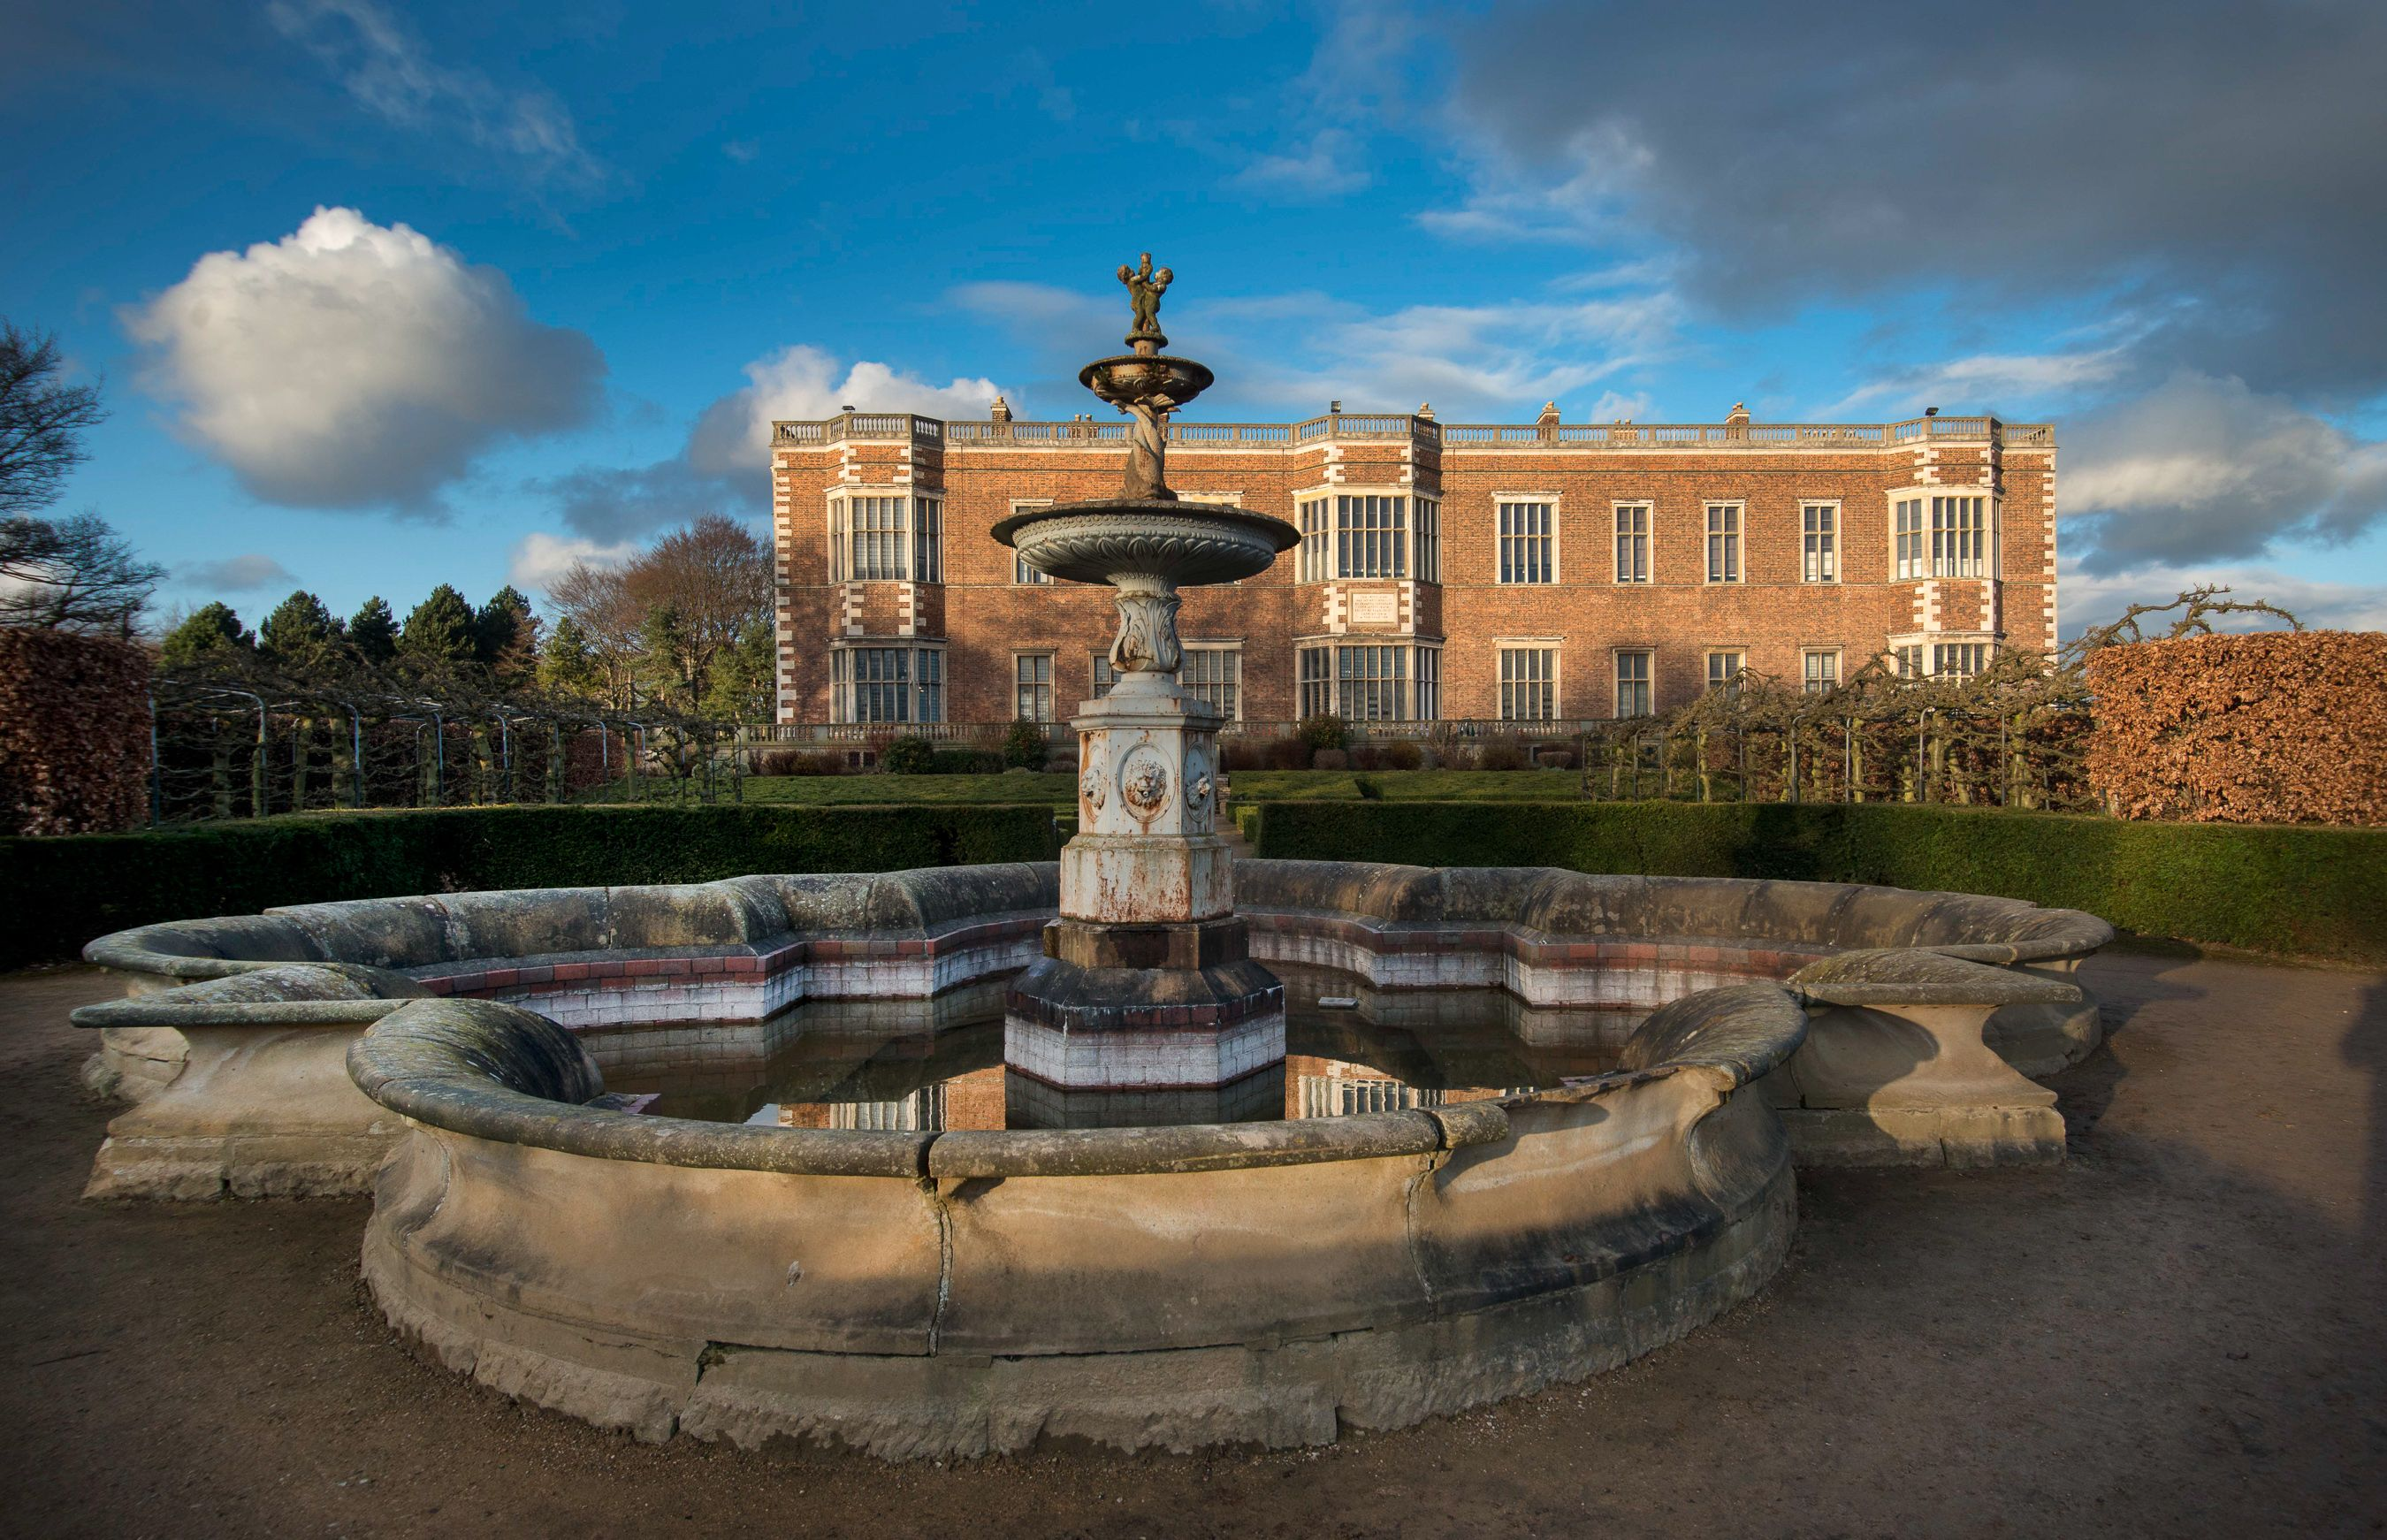 Temple Newsam House, Historic House, Leeds